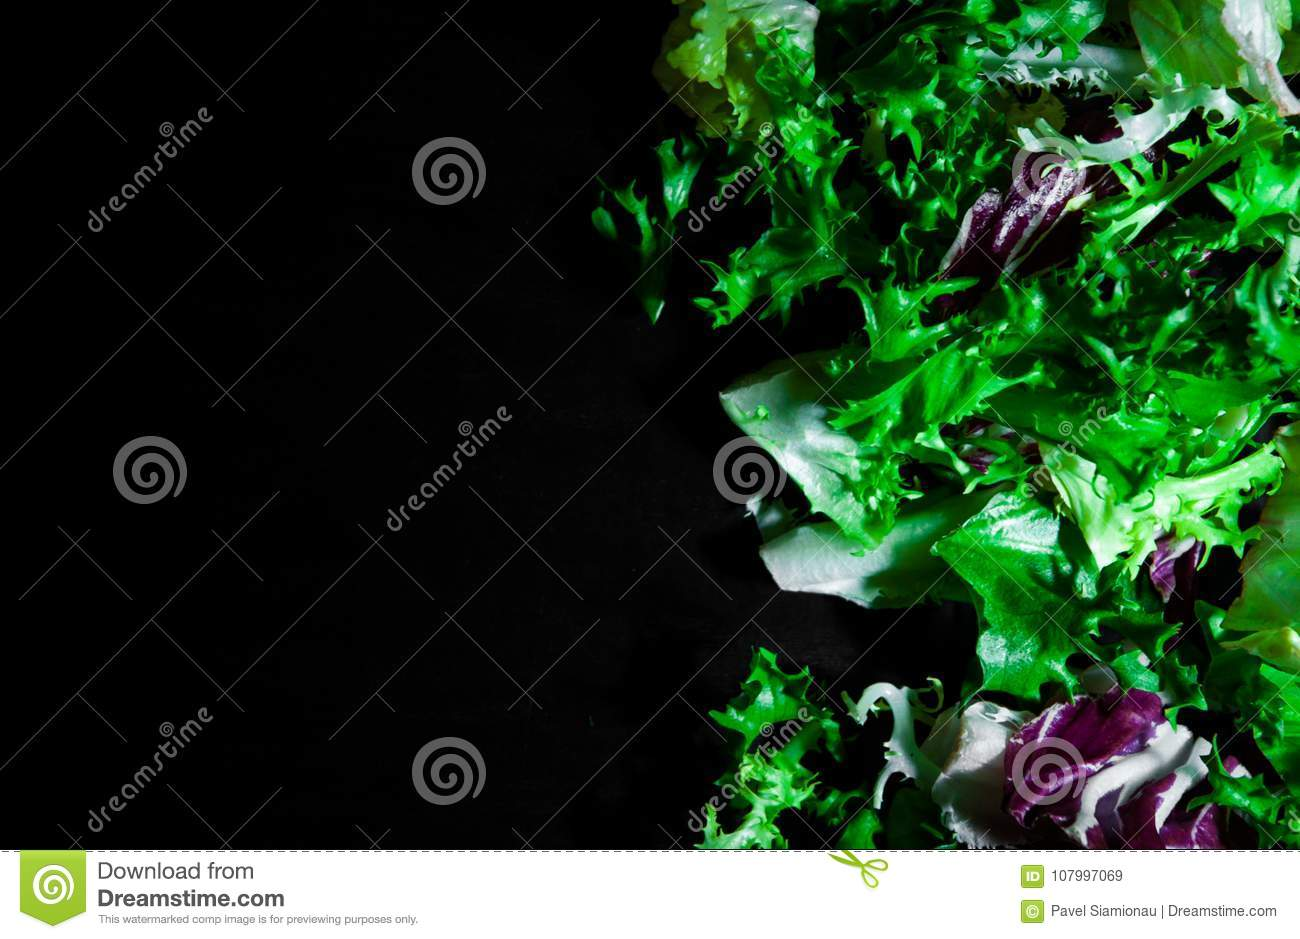 Various fresh salad leaves with lettuce, radicchio, and rocket on dark wooden background with copy space